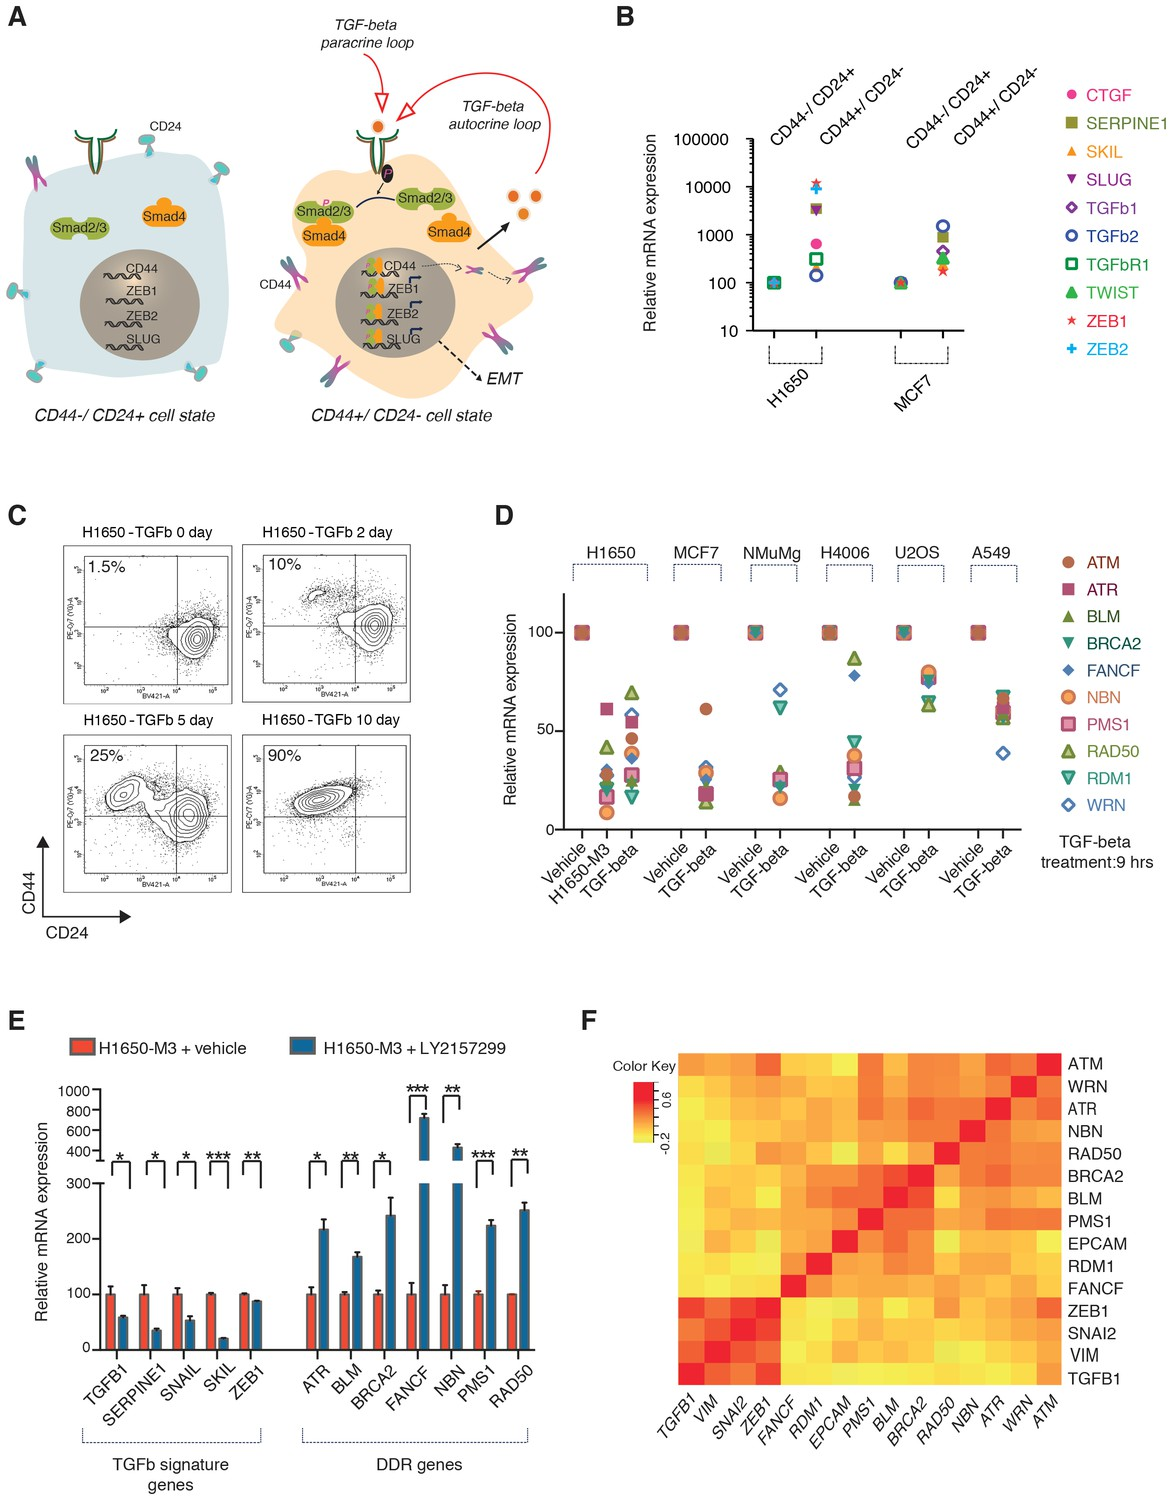 Tgf Reduces Dna Ds Break Repair Mechanisms To Heighten Genetic Sp Reguler Axis Hitz The Controls Expression Of Hdr Genes That Are Downregulated In Cd44 Cd24 Cells